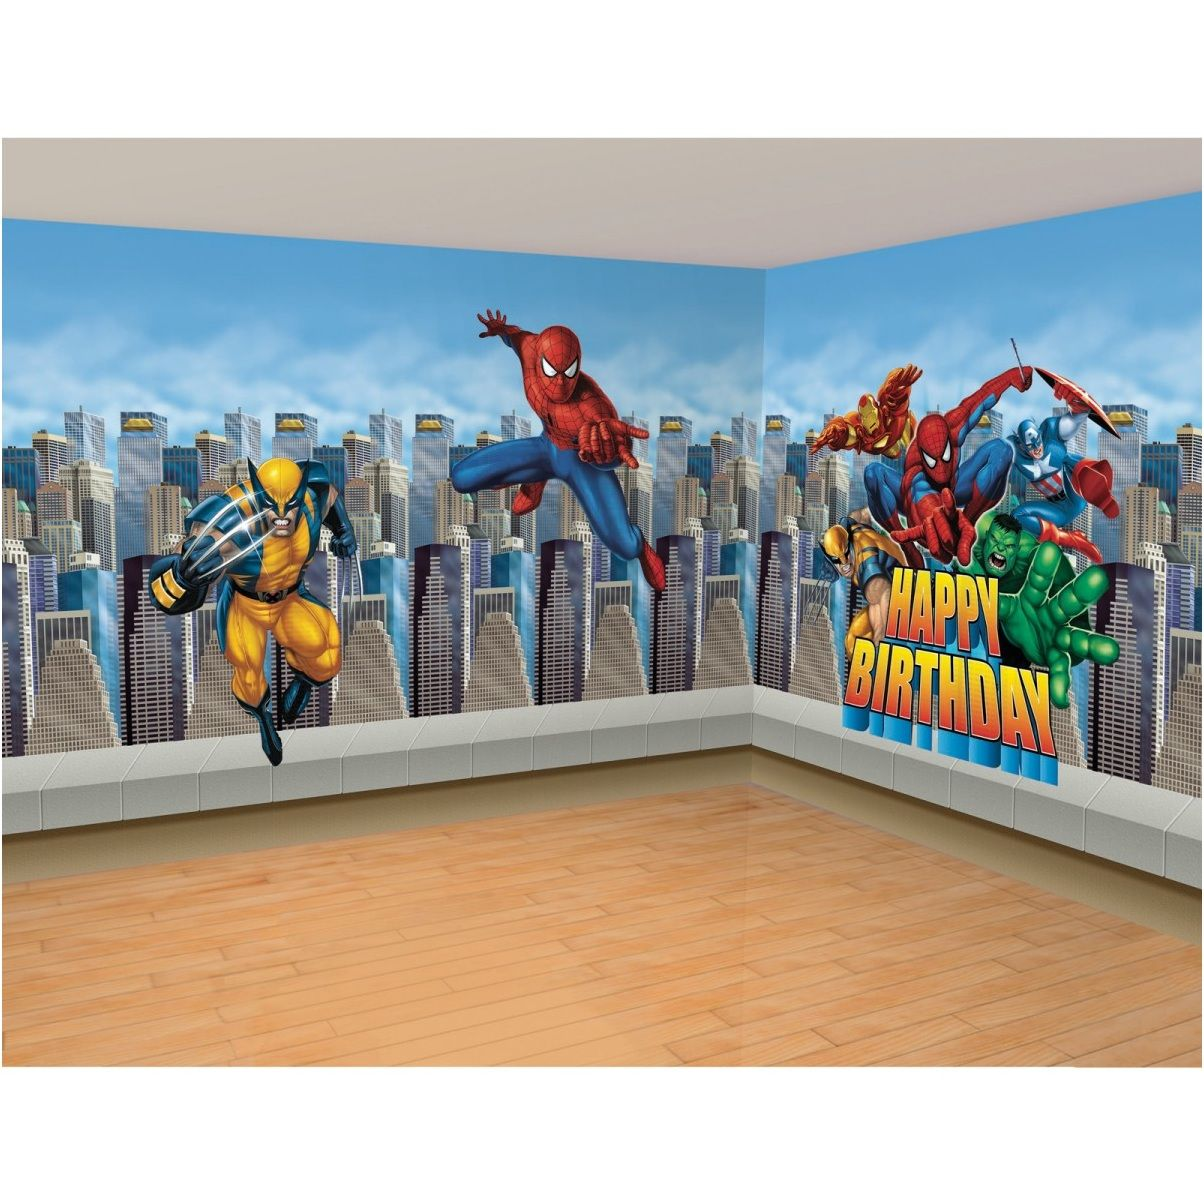 Marvel super hero bedroom wall decal ideas jace pinterest marvel super hero bedroom wall decal ideas amipublicfo Images